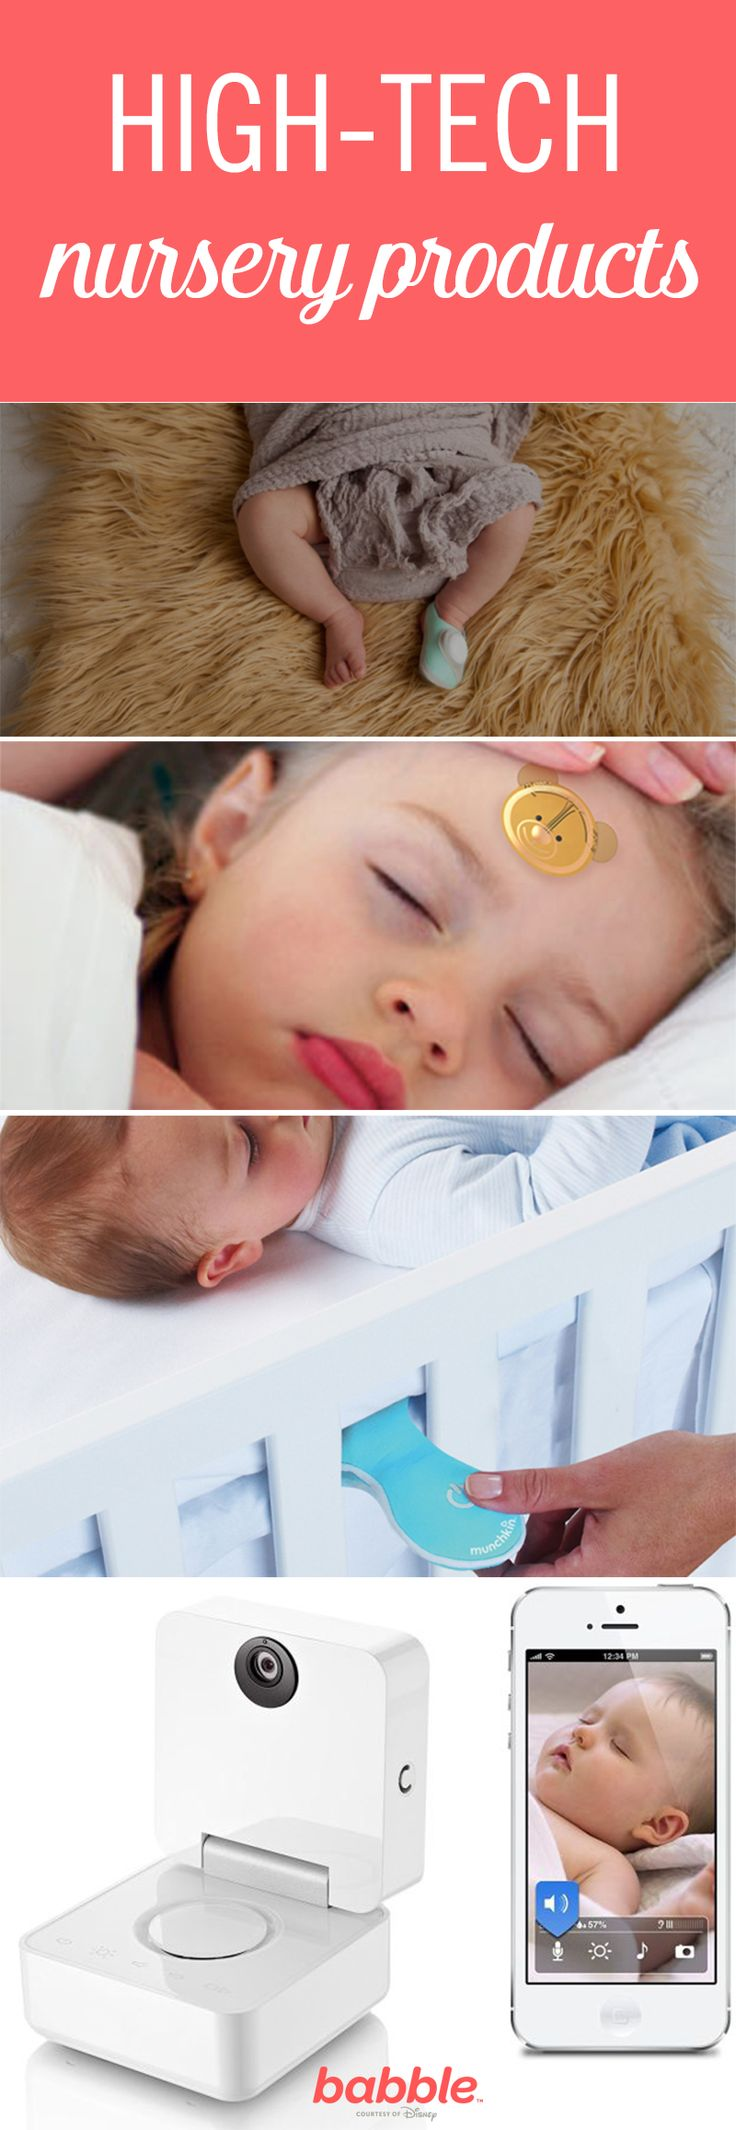 As technology continues to expand, we can expect to see new high-tech products for our nurseries that could potentially change our lives (and the lives of our little ones). Luckily, most of these futuristic nursery gadgets seem totally helpful and great for babies. Click for a list of exciting products that are perfect for tech-friendly parents.